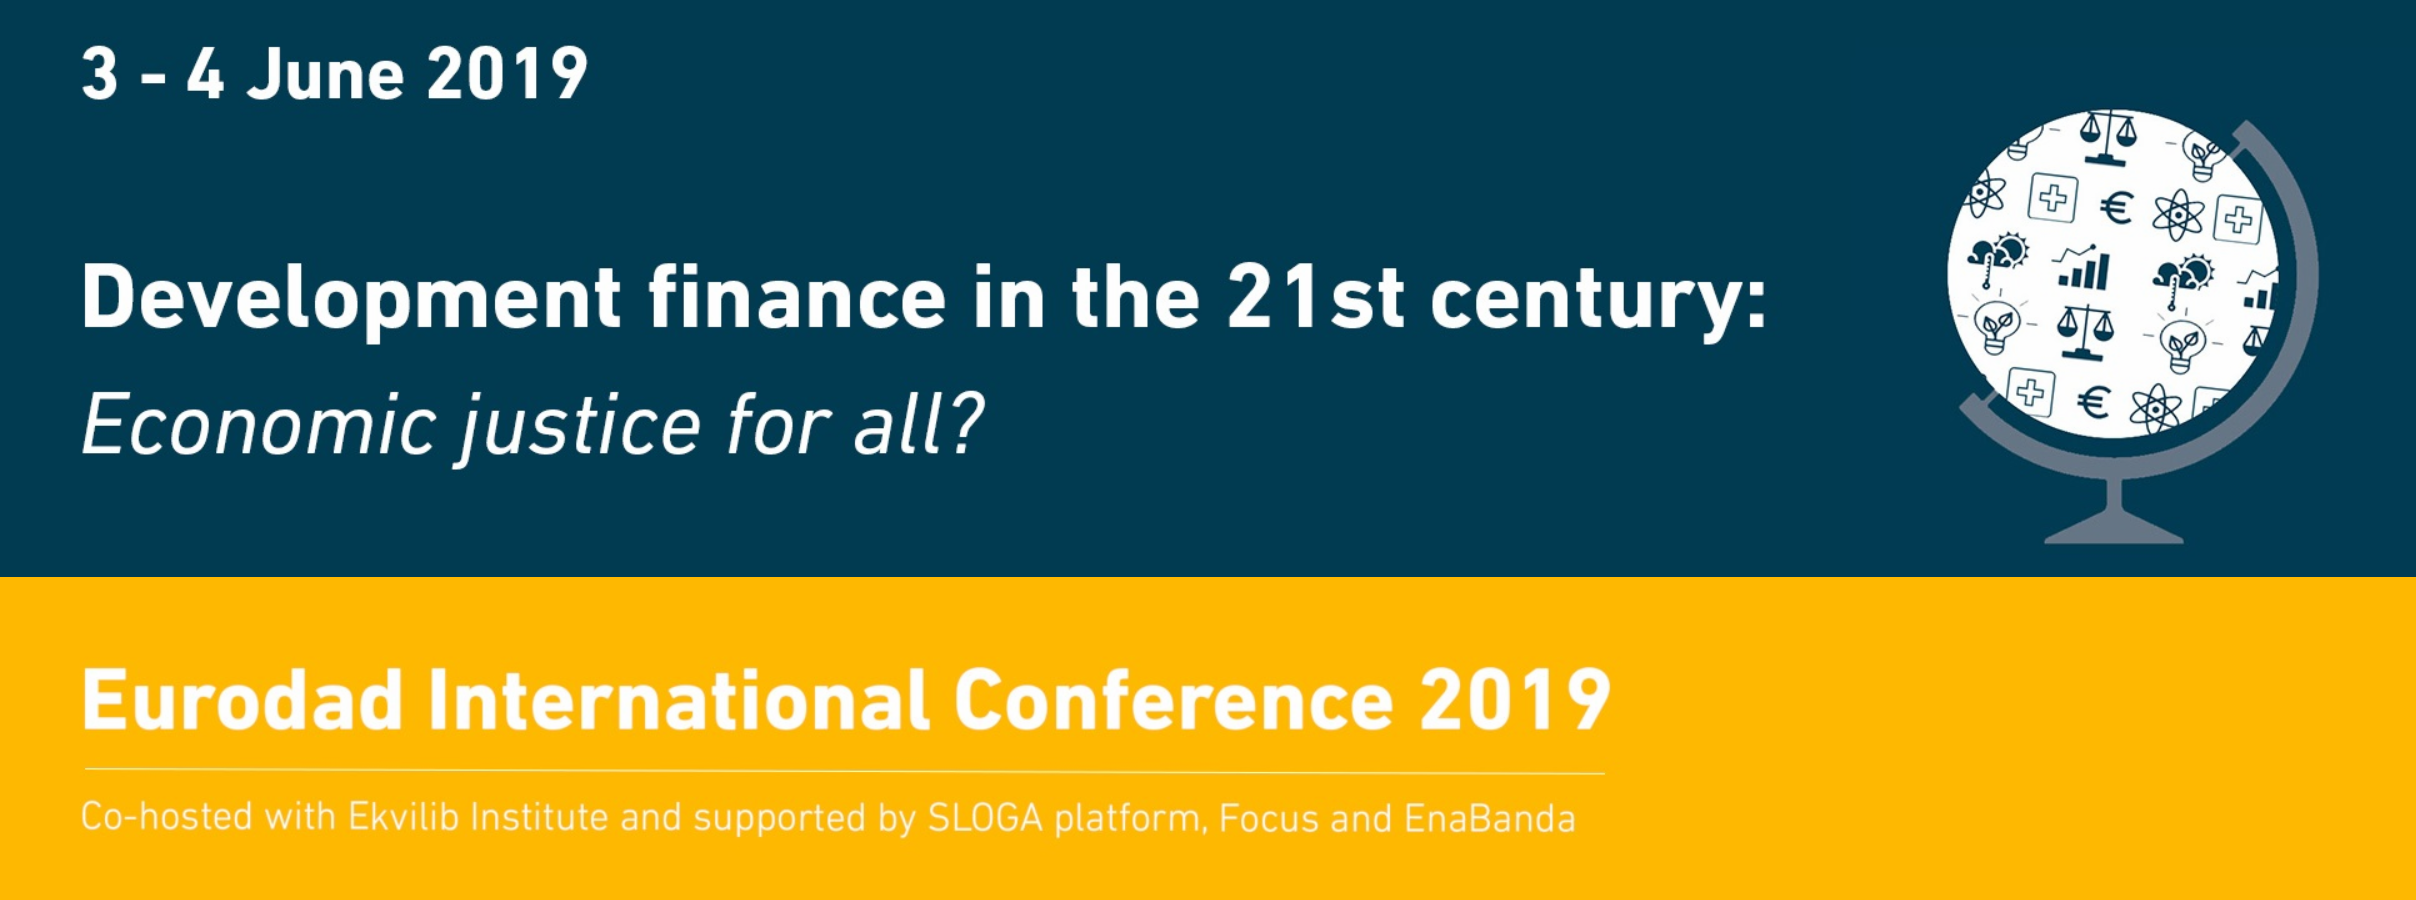 "Banner image for the international conference. White text on a dark blue background reads ""Development finance in the 21st century: Economic justice for all?""  Underneath, white text on a yellow background reads: ""Eurodad international conference 2019, co-hosted with Ekvilib Institute and supported by SLOGA platform, Focus and EnaBanda"